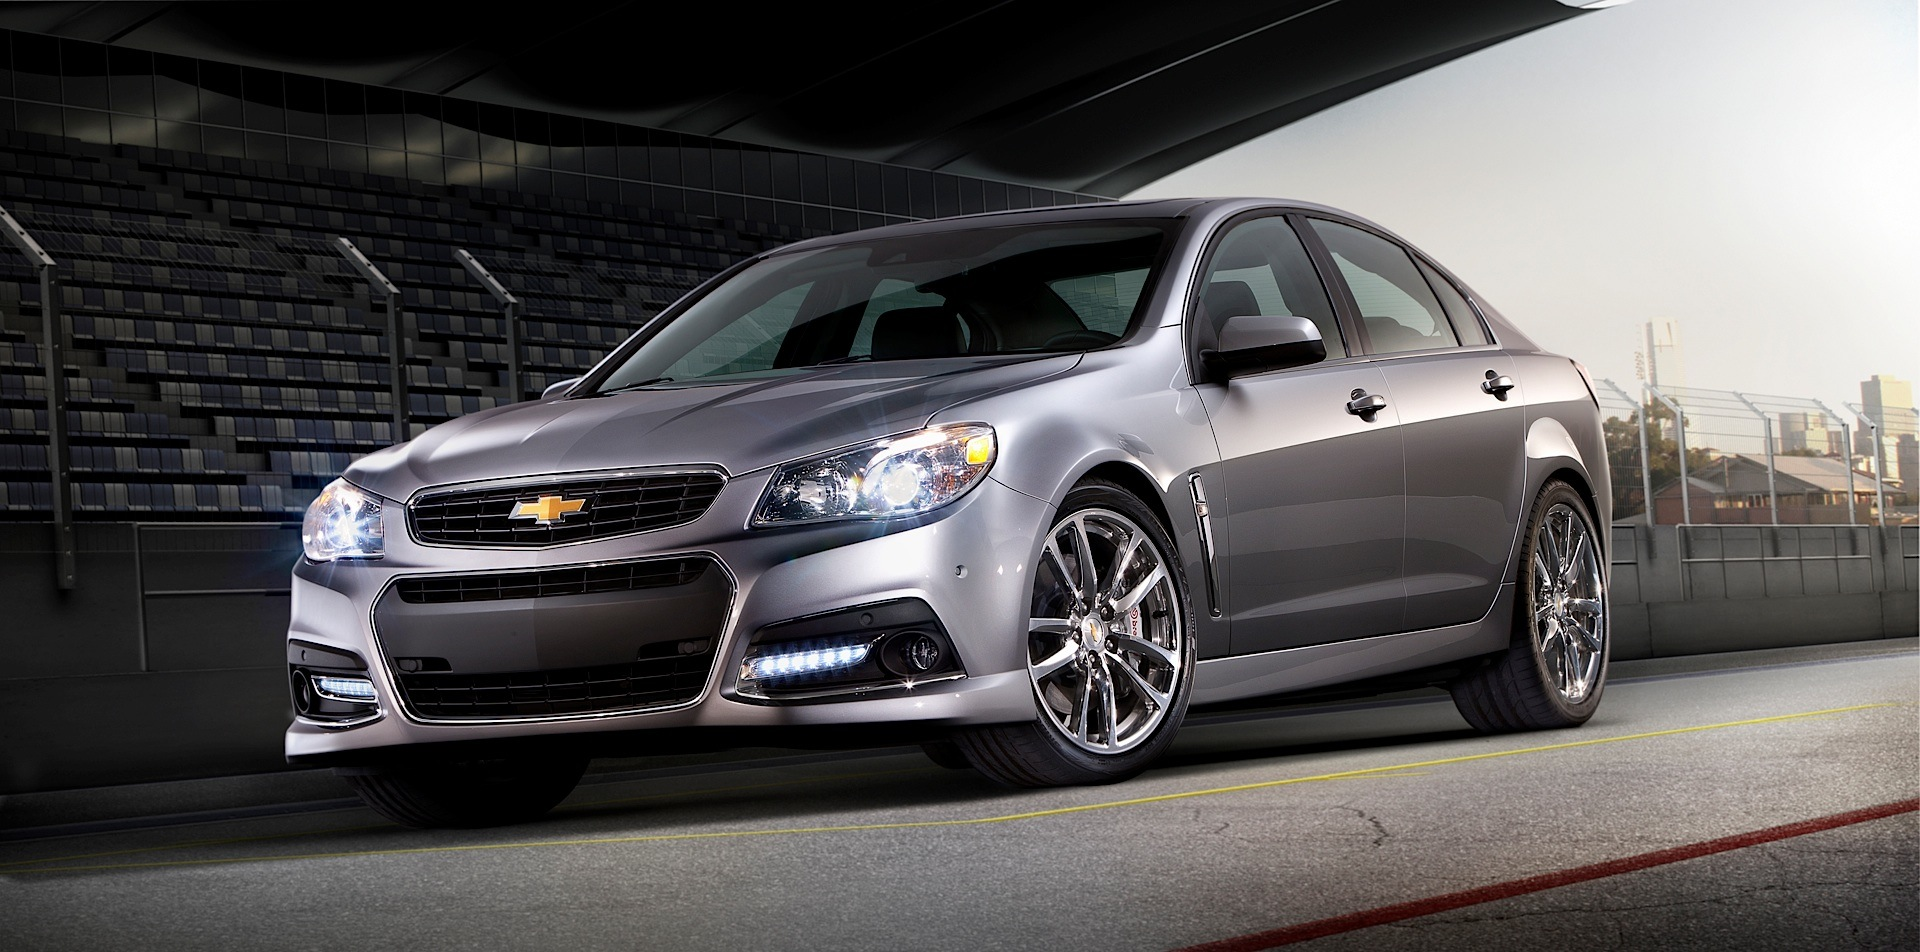 All Chevy chevy caprice 2013 : All Chevy » 2015 Chevy Caprice Ss - Old Chevy Photos Collection ...